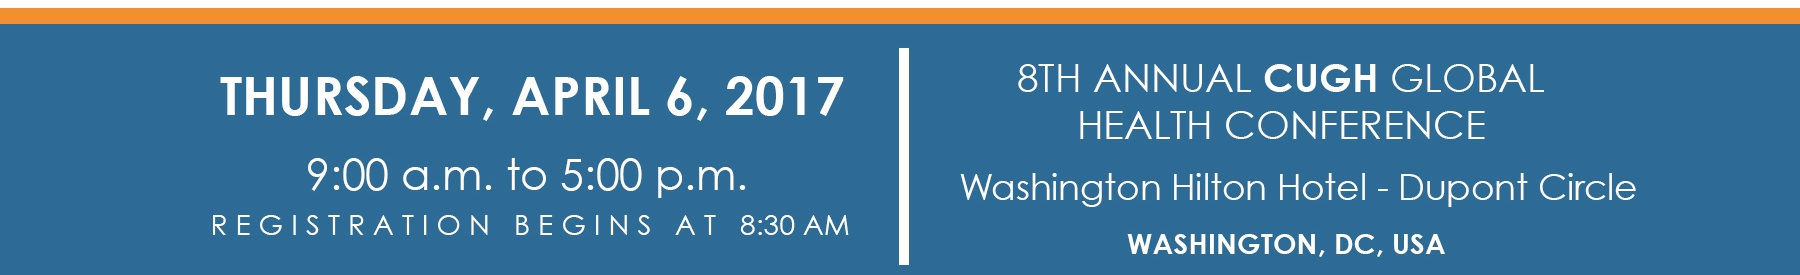 Registration is open and independent of registering for the CUGH 2017 Conference. Pre-registration is required. For more information about the 8th Annual CUGH Conference visit: www.cugh.org.